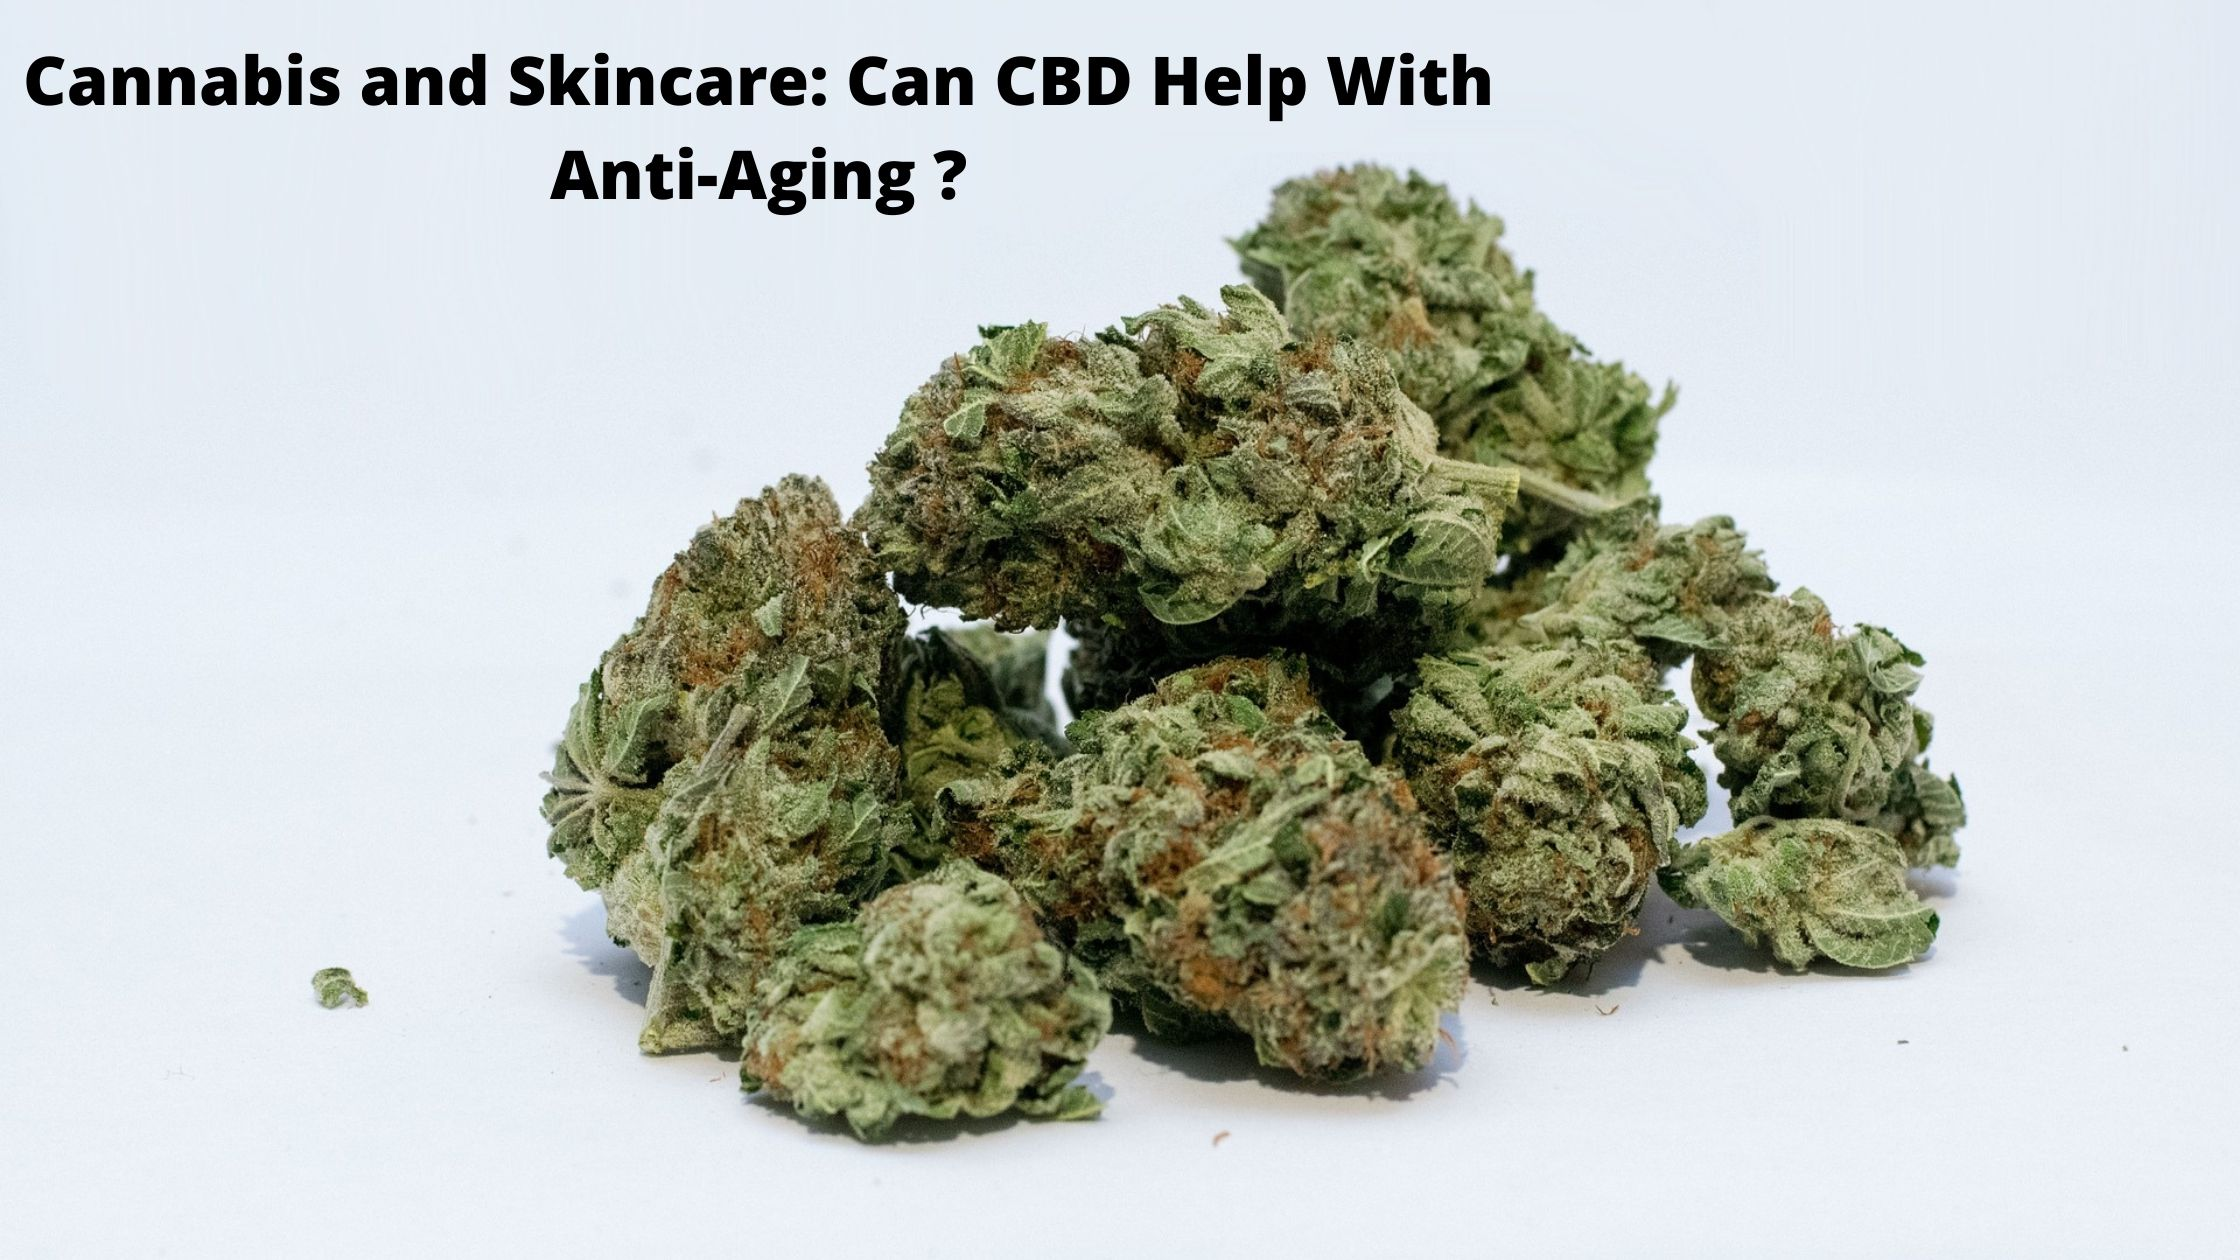 Cannabis and Skincare Can CBD Help With Anti-Aging